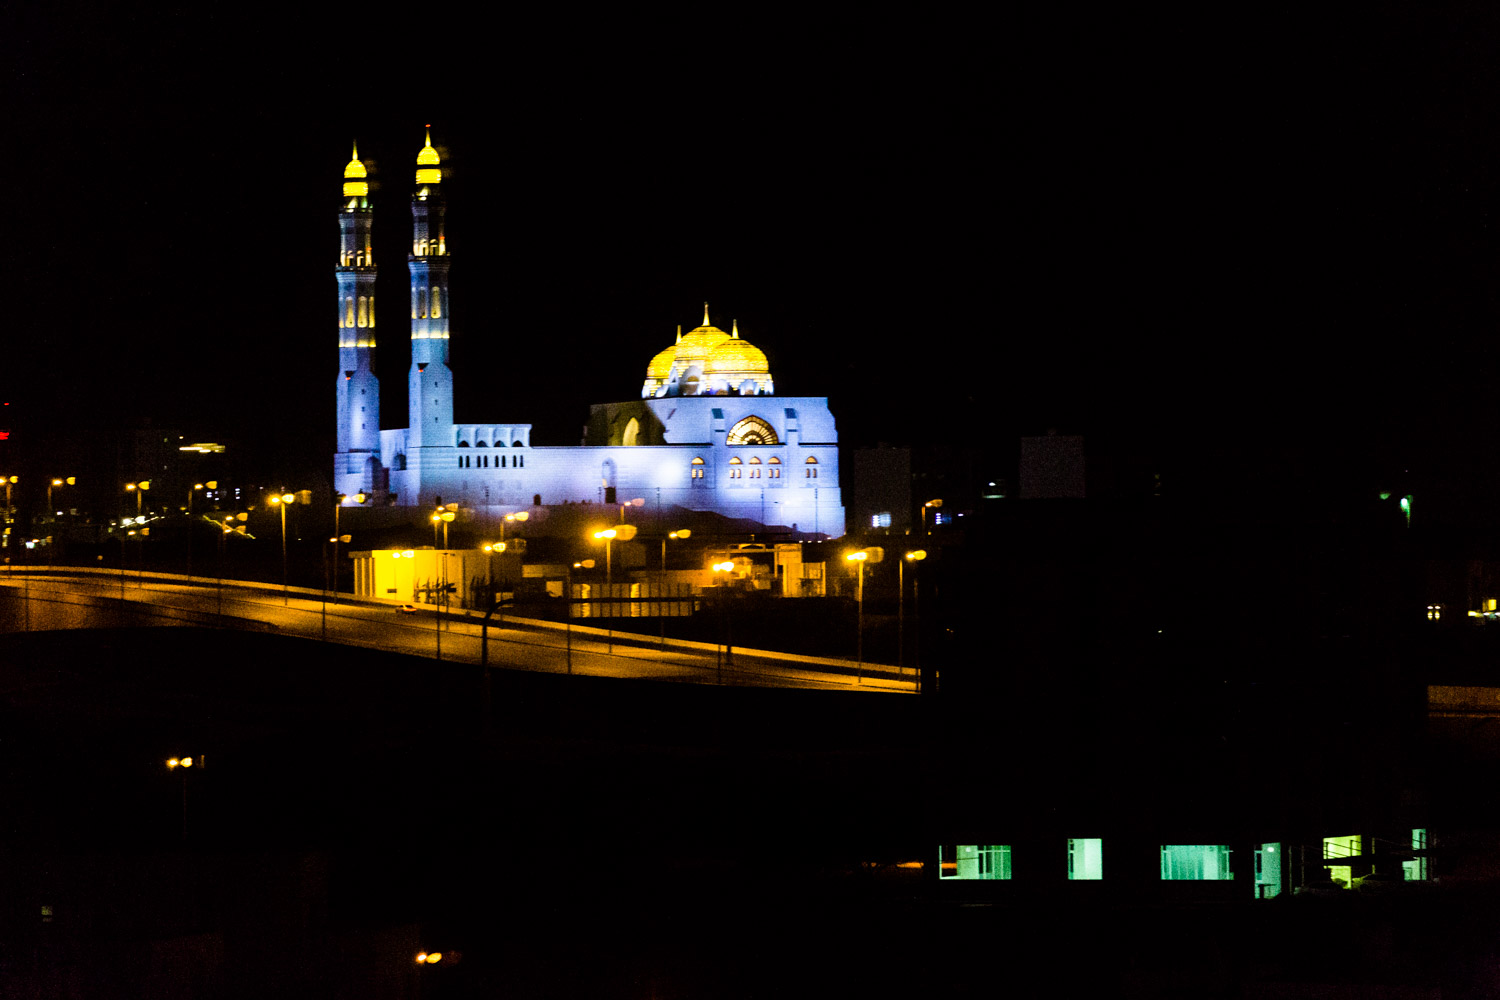 Picture taken from the window of my hotel room in the middle of the night. This time I used my camera and a zoom to frame the mosque Saeed Bin Taimur Masjid. ISO 10 000, f / 2.8, 168 mm, 1 / 125 sec, no tripod.